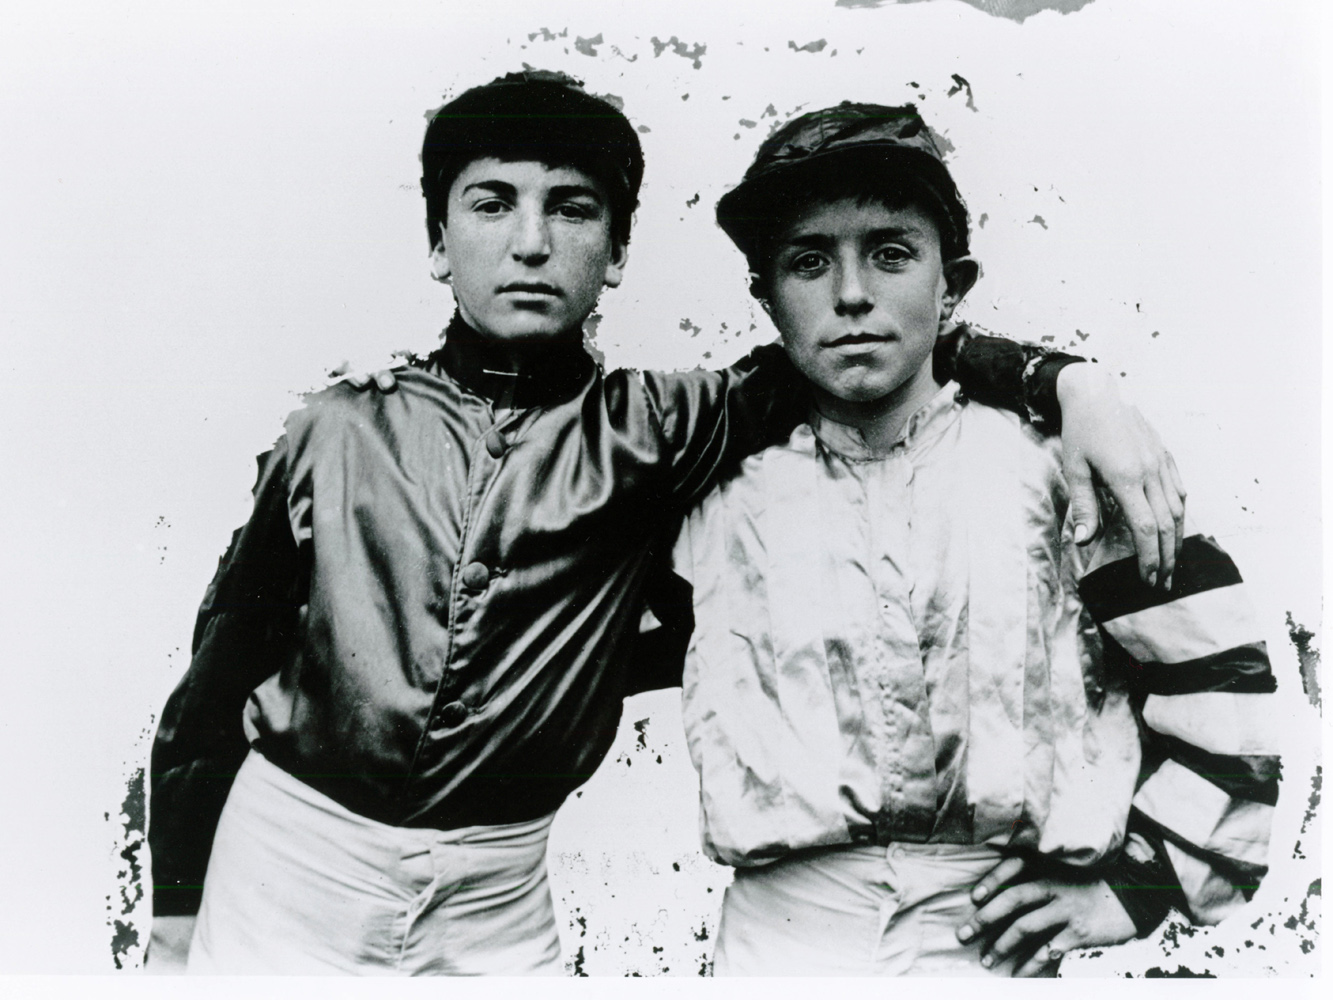 Jockeys Walter Miller and R. McDaniel in 1906 (Keeneland Library Cook Collection/Museum Collection)